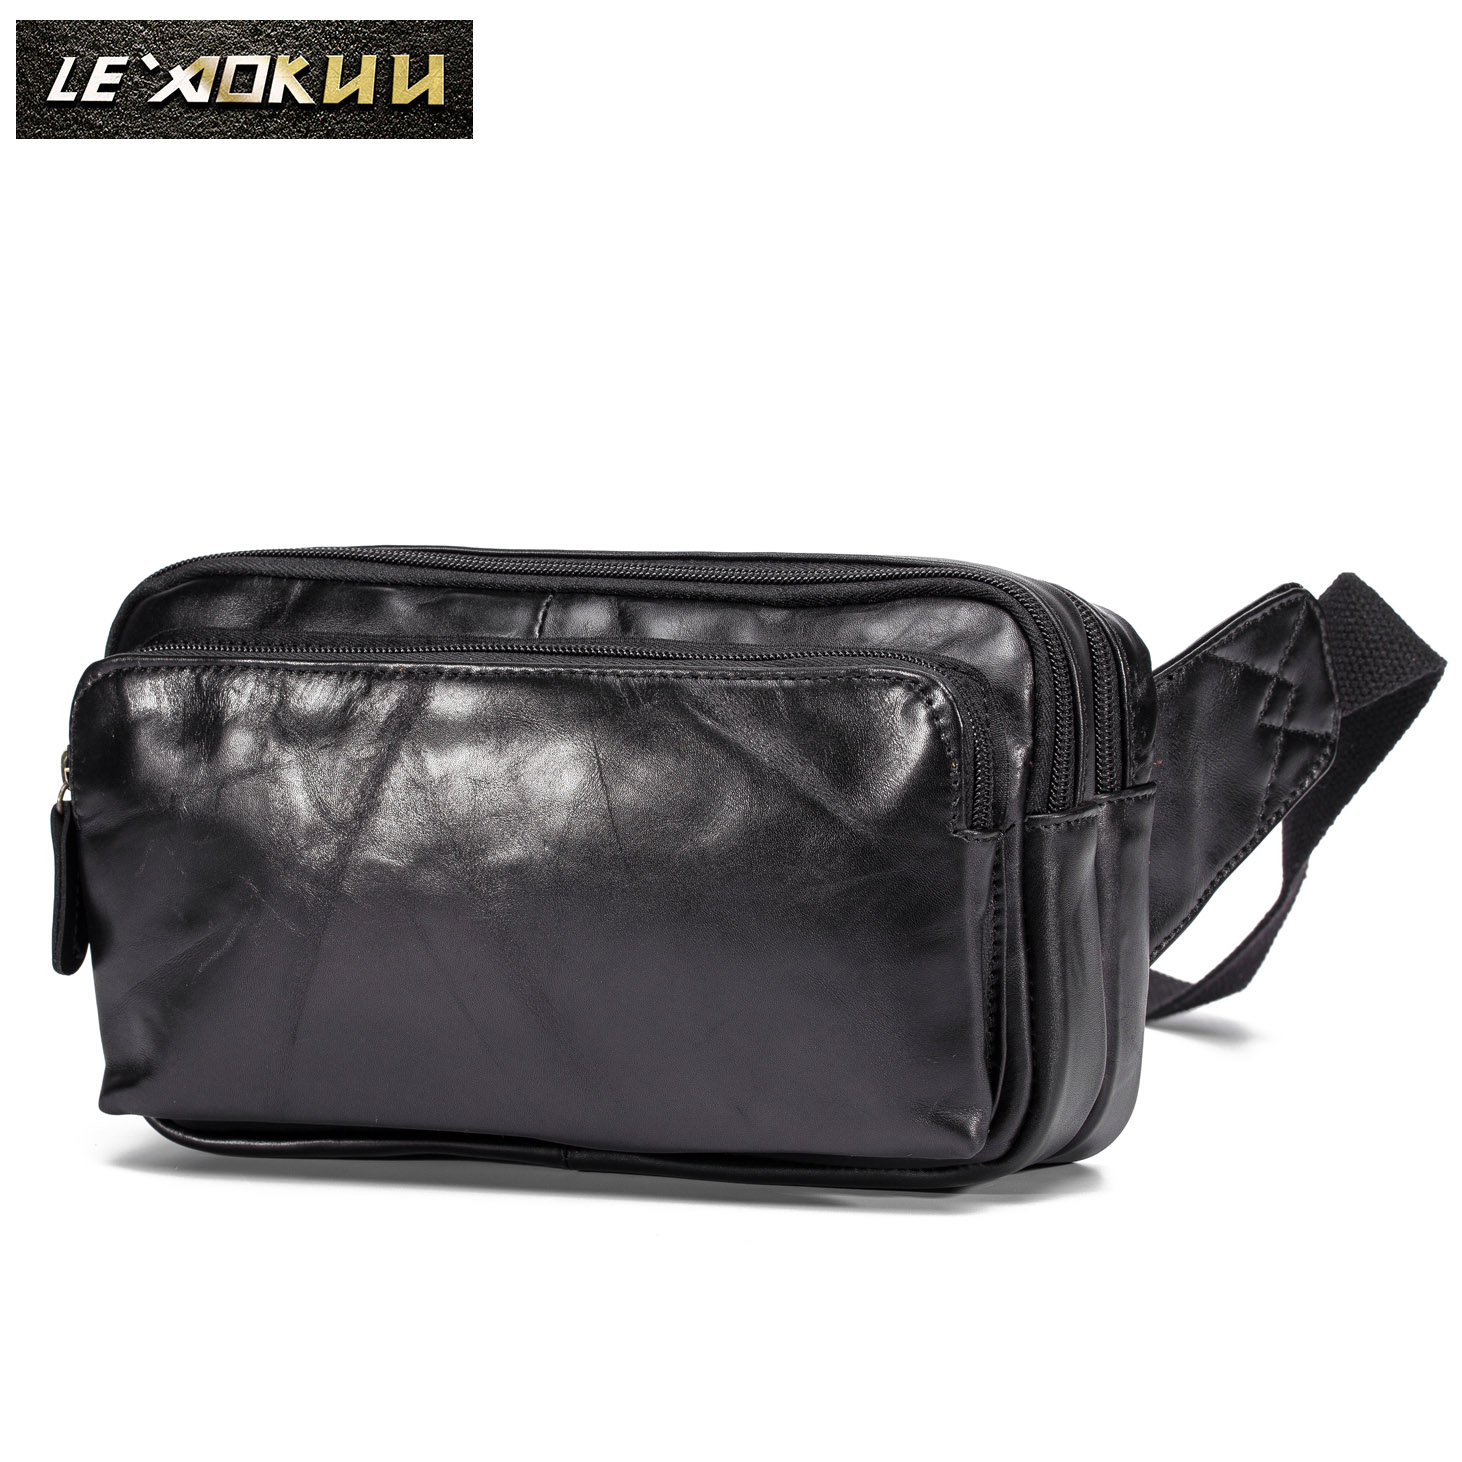 New Real Quality Leather Men Casual Fashion Travel Fanny Waist Belt Pack Sling Bag Design 7